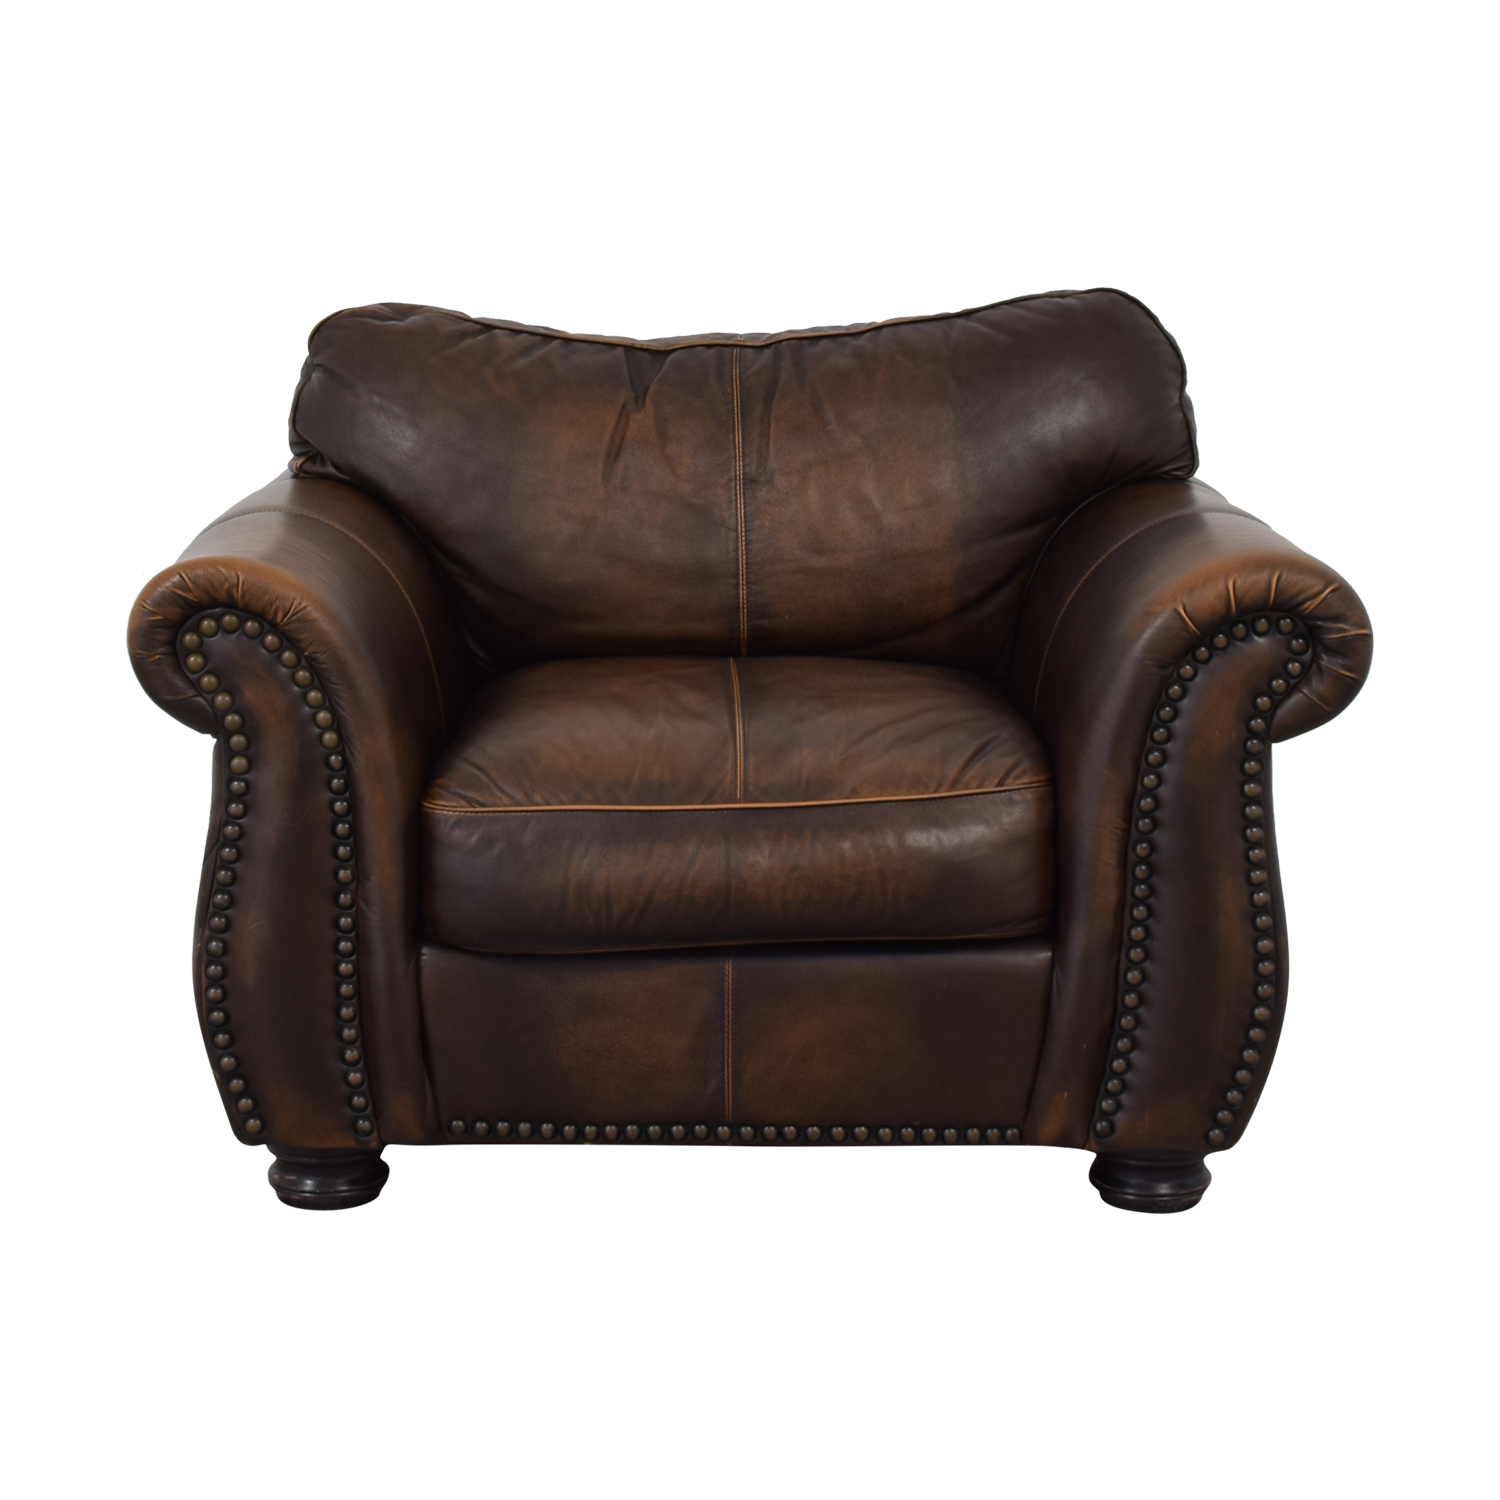 Raymour & Flanigan Raymour & Flanigan Leather Chair